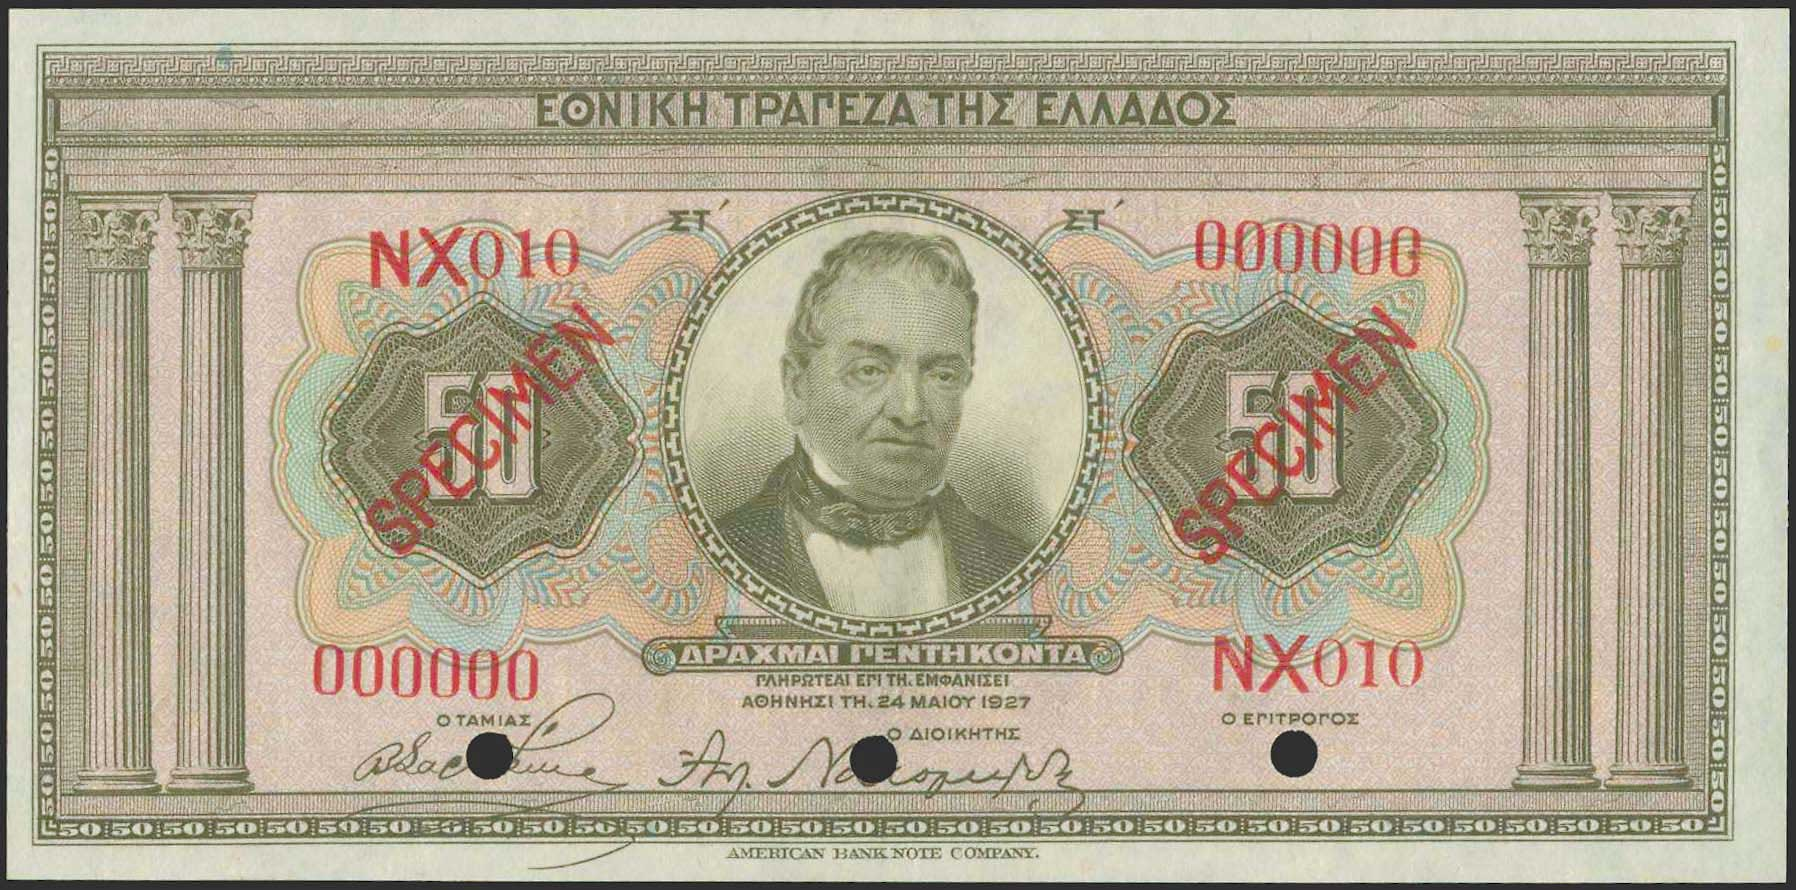 Lot 9279 - GREECE-  PAPER MONEY - BANKNOTES National Bank of Greece -  A. Karamitsos Public & LIVE Bid Auction 610 Coins, Medals & Banknotes